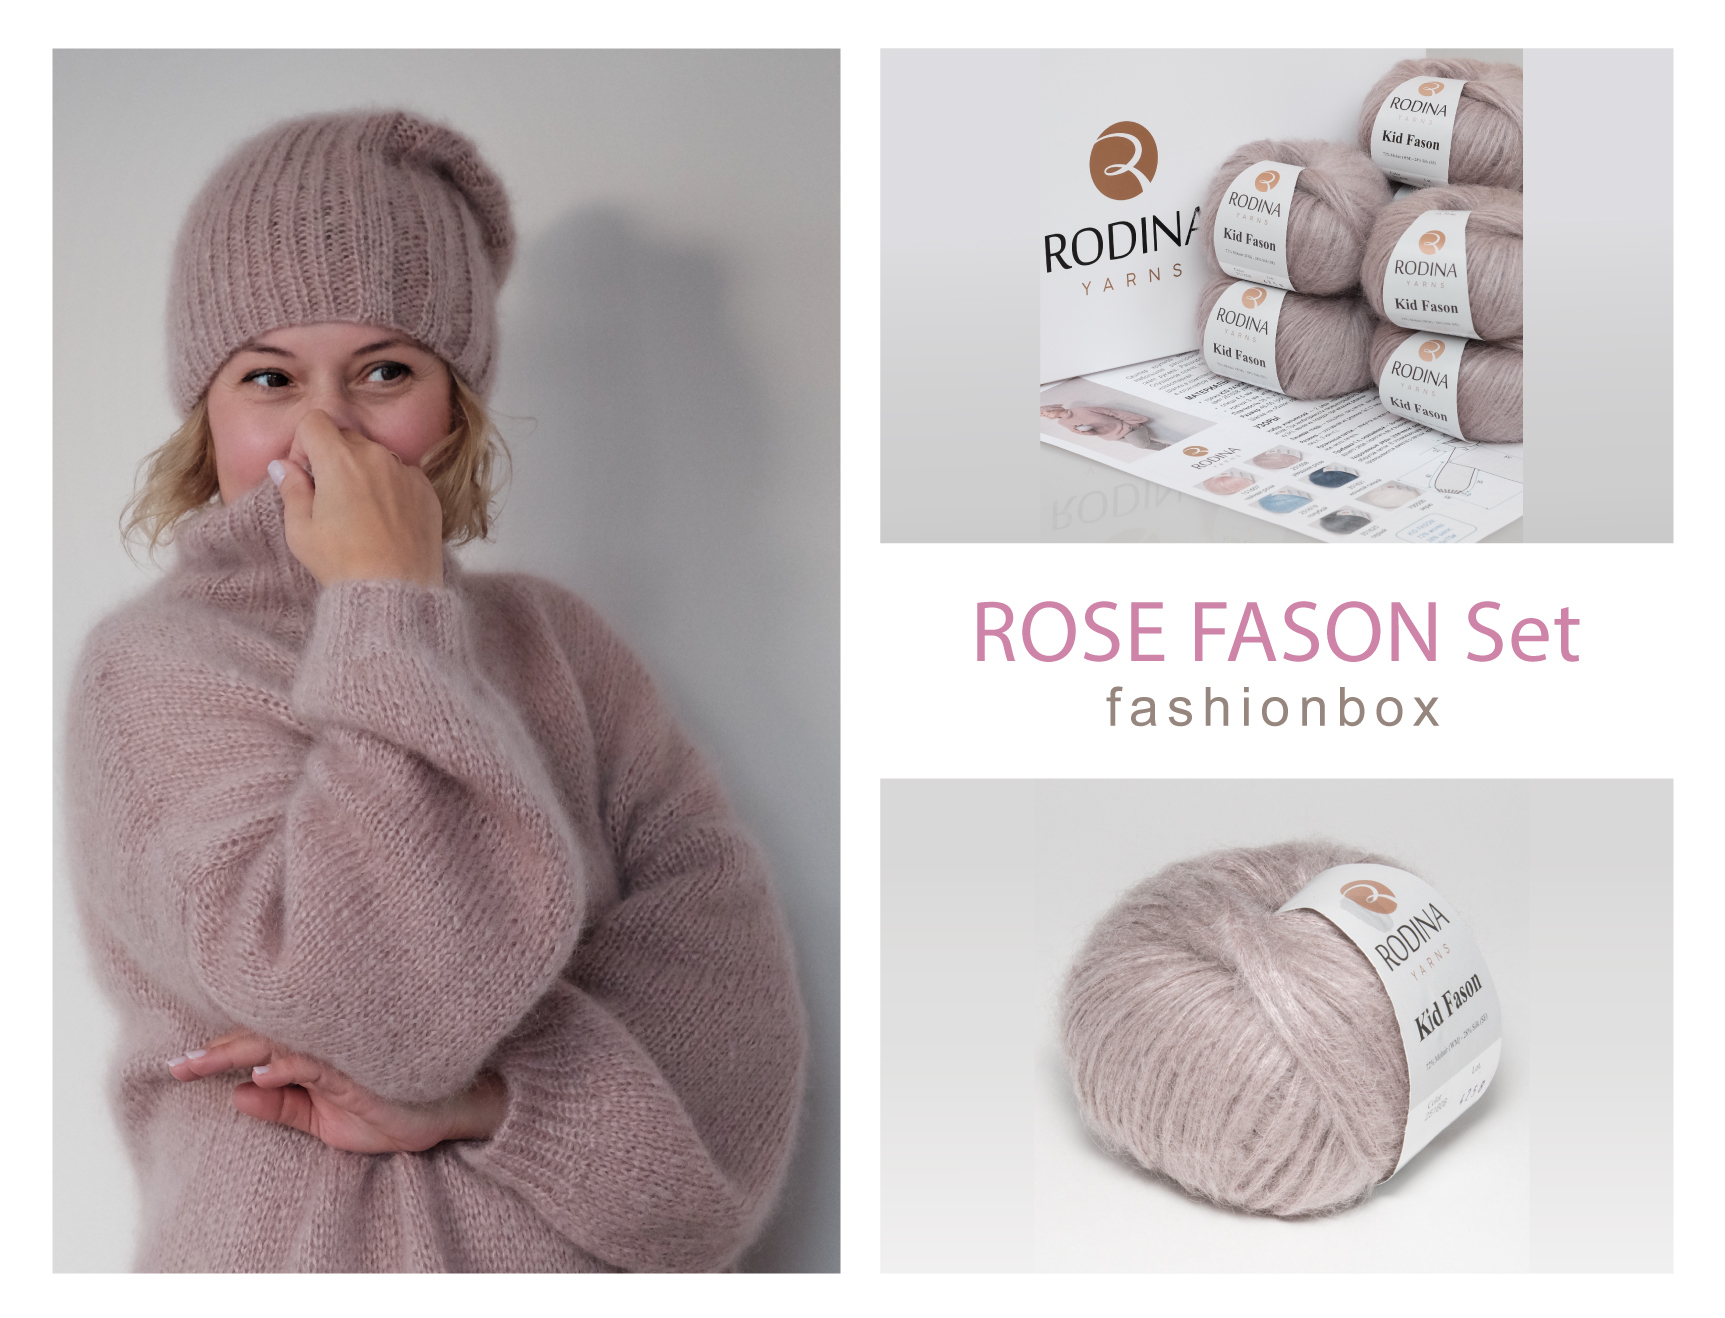 ROSE FASON Set Fashionbox